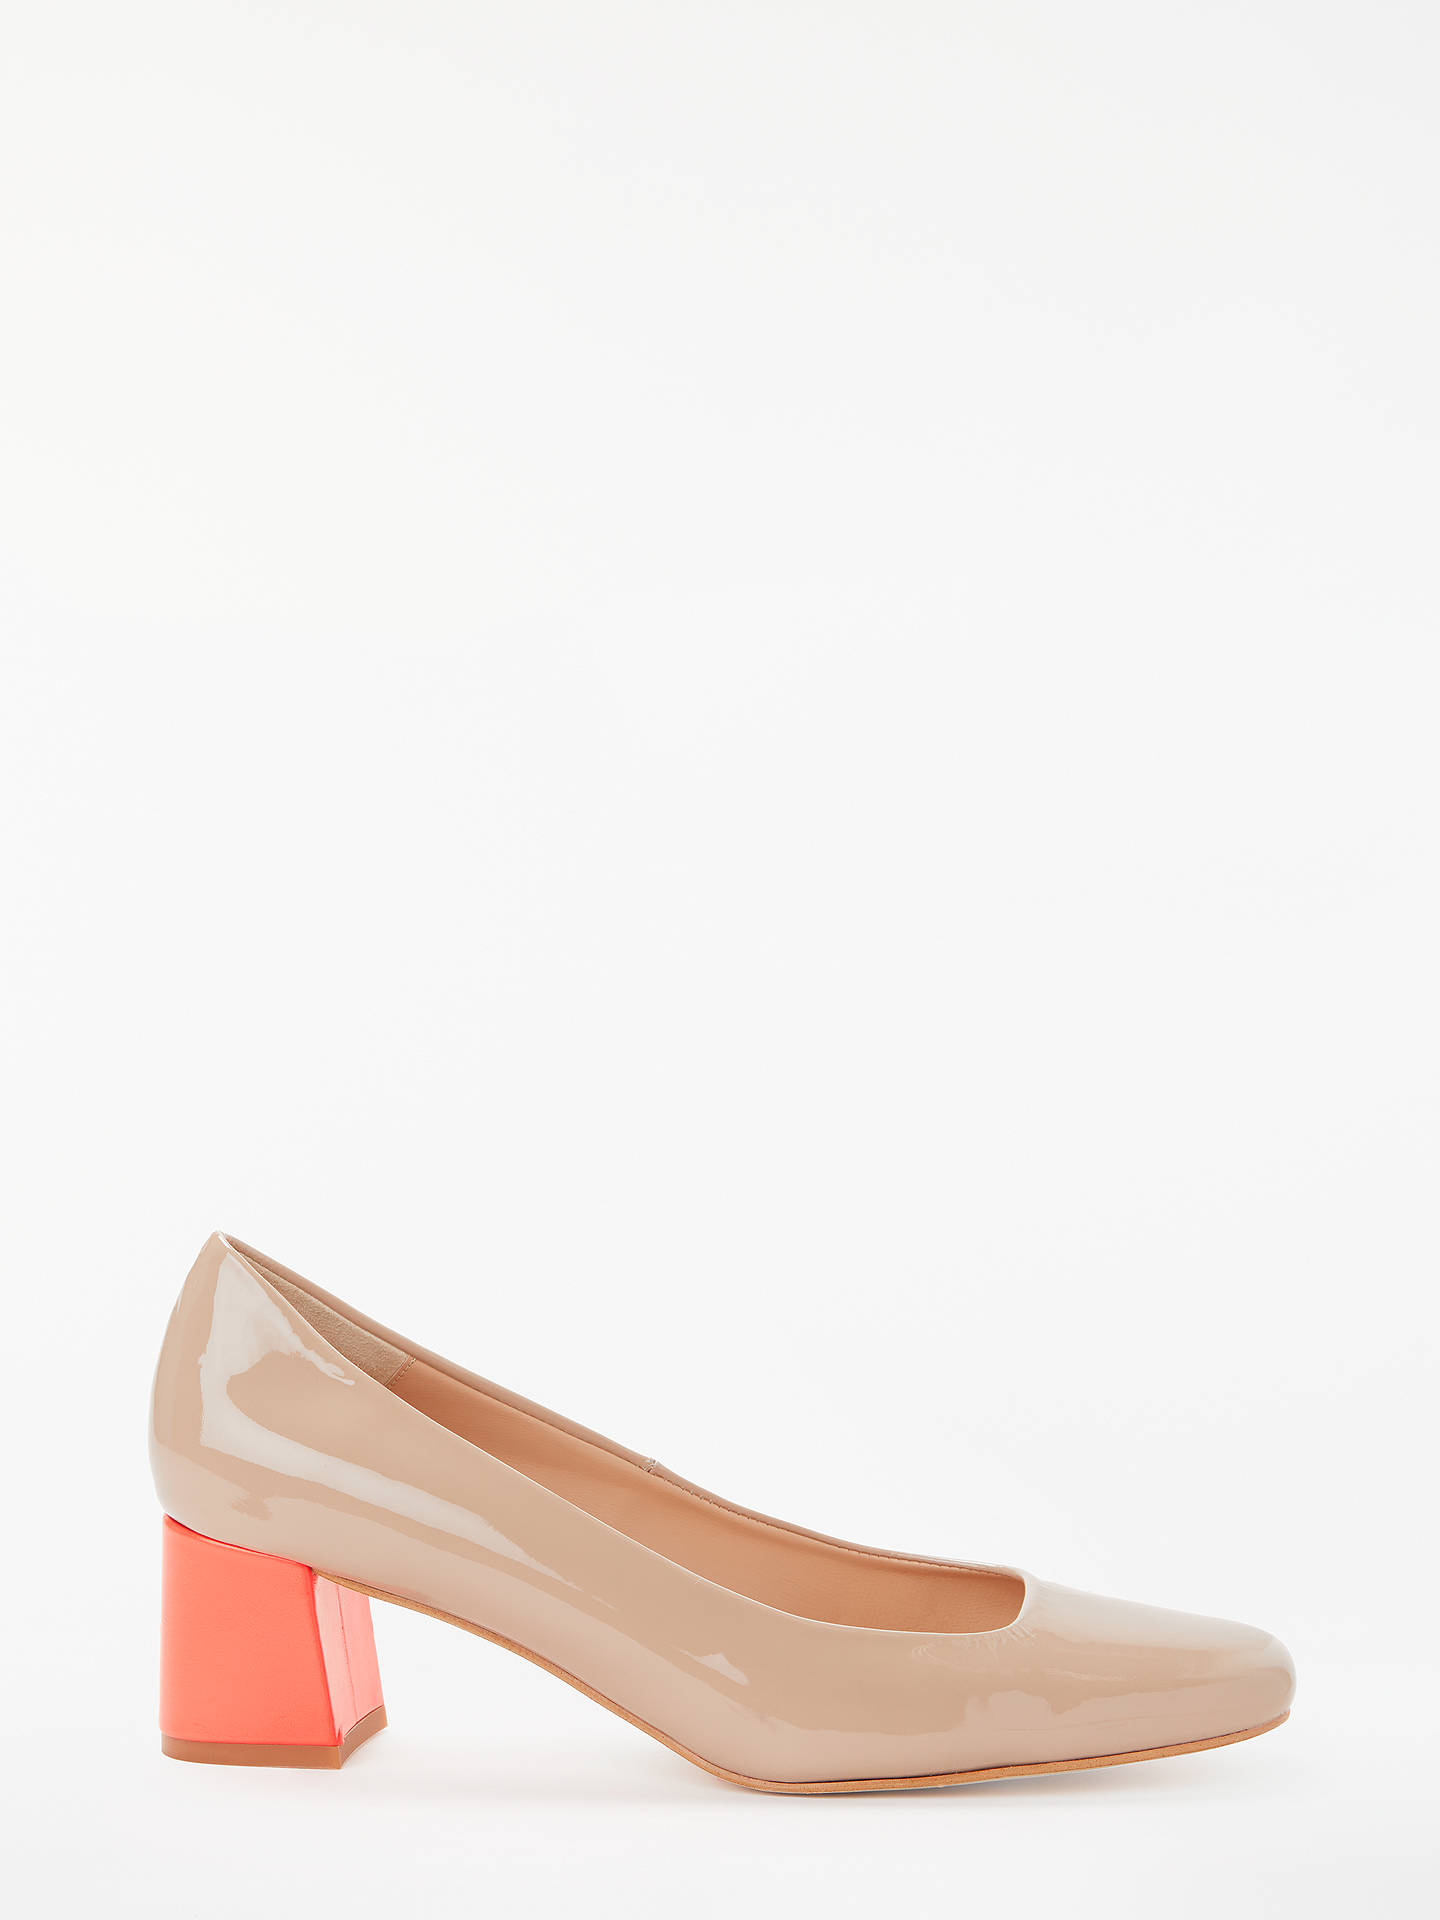 Buy Lewis John high heels latest collection footwear picture trends